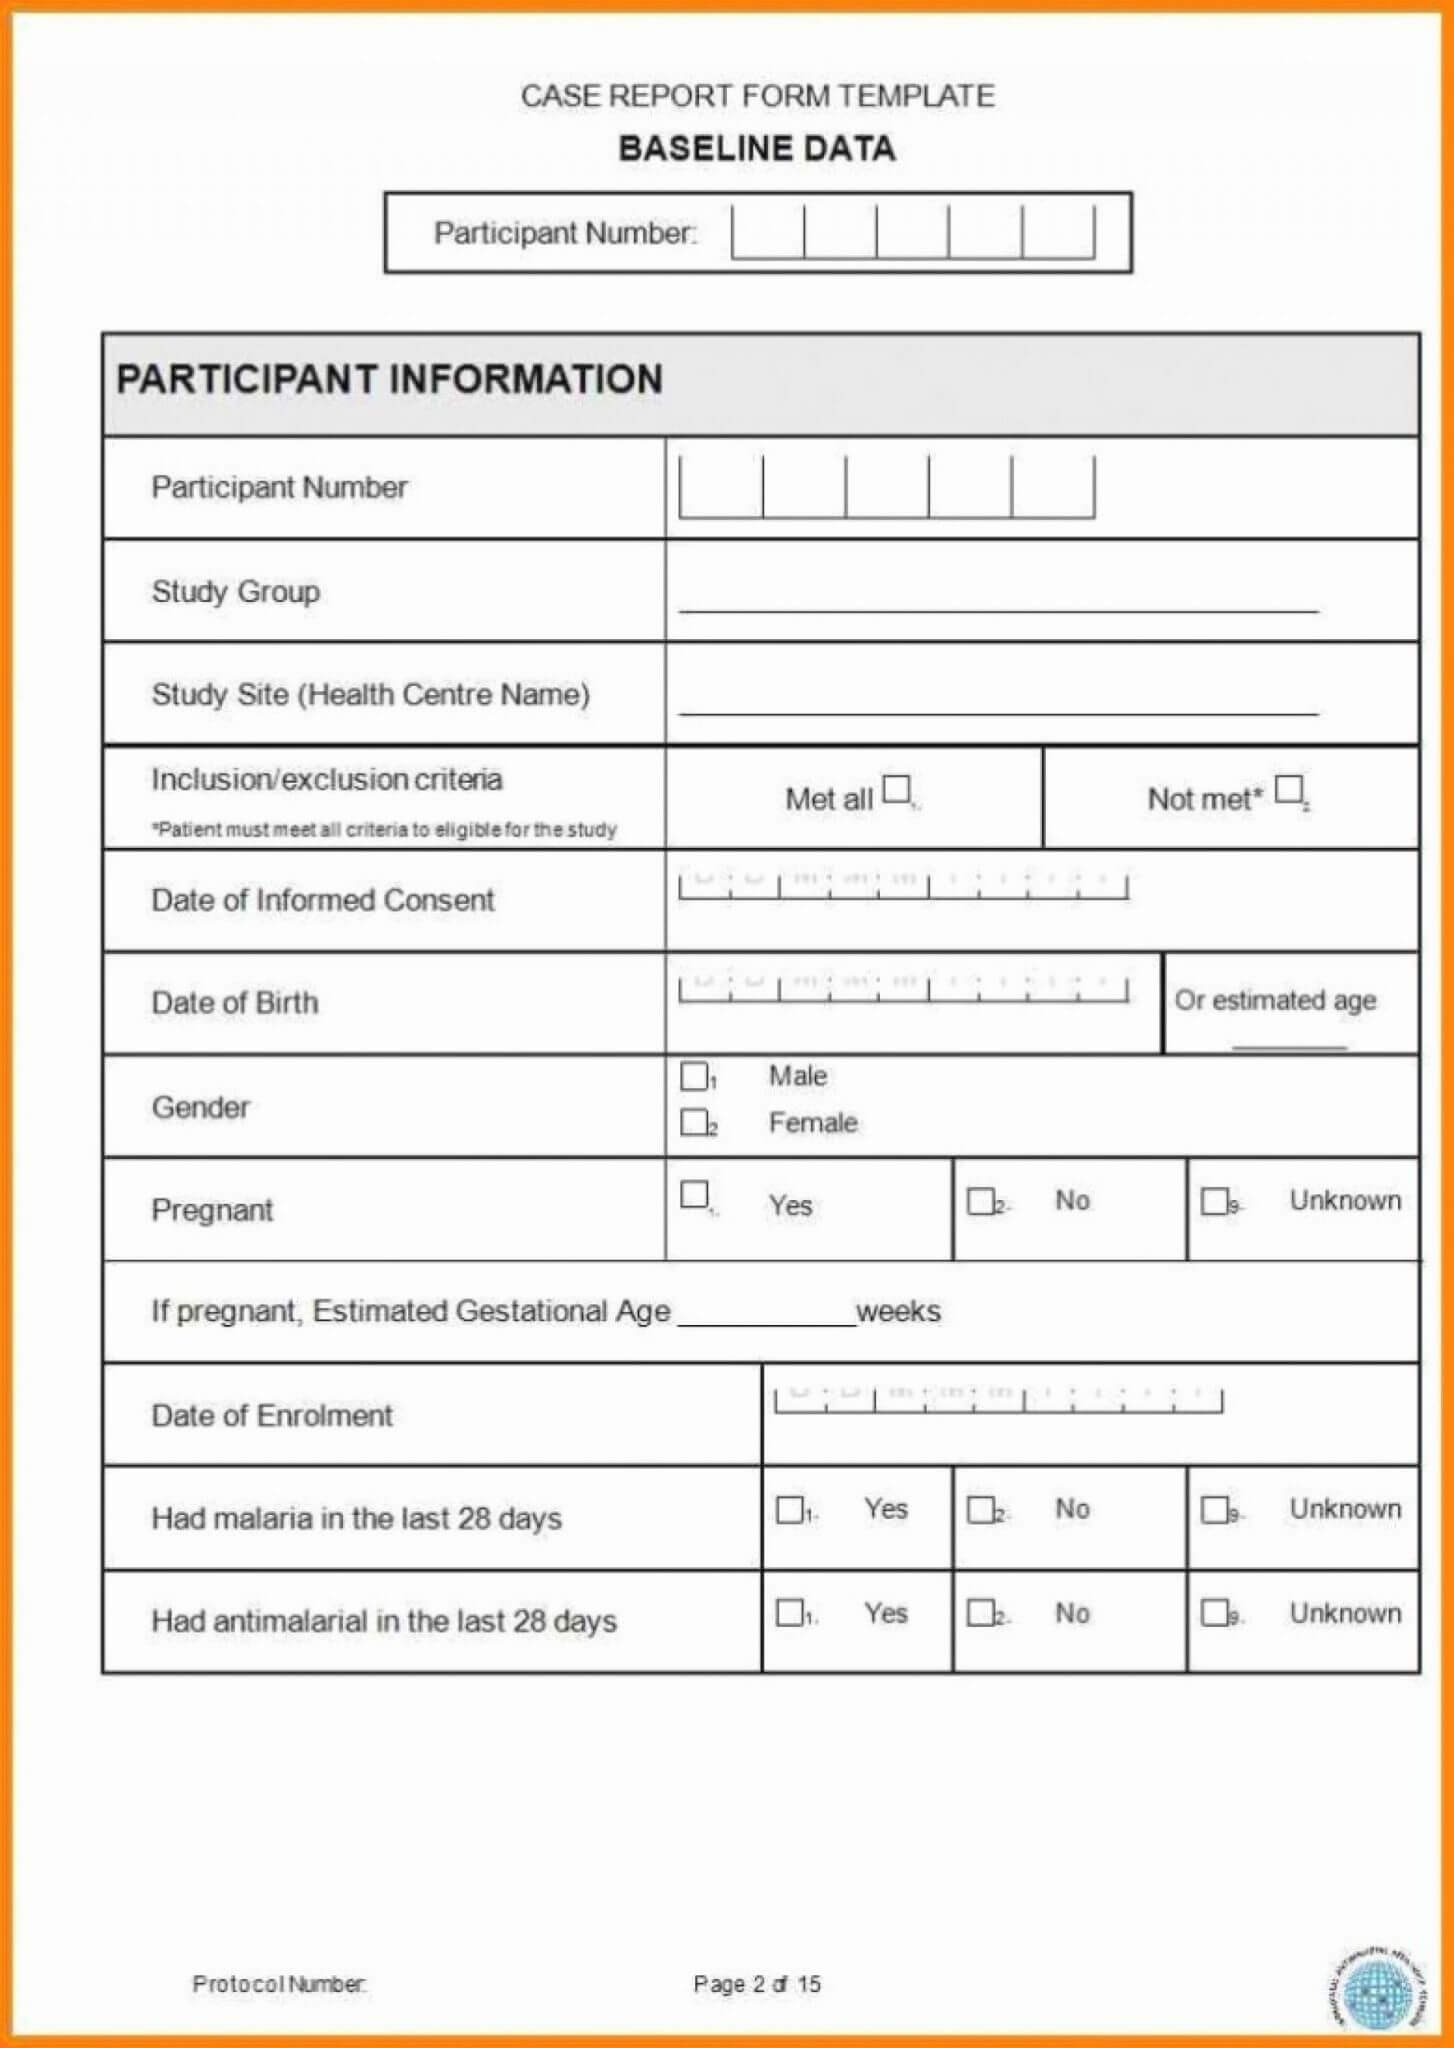 Case Report Form Template Unique Catering Resume Clinical Inside Case Report Form Template Clinical Trials